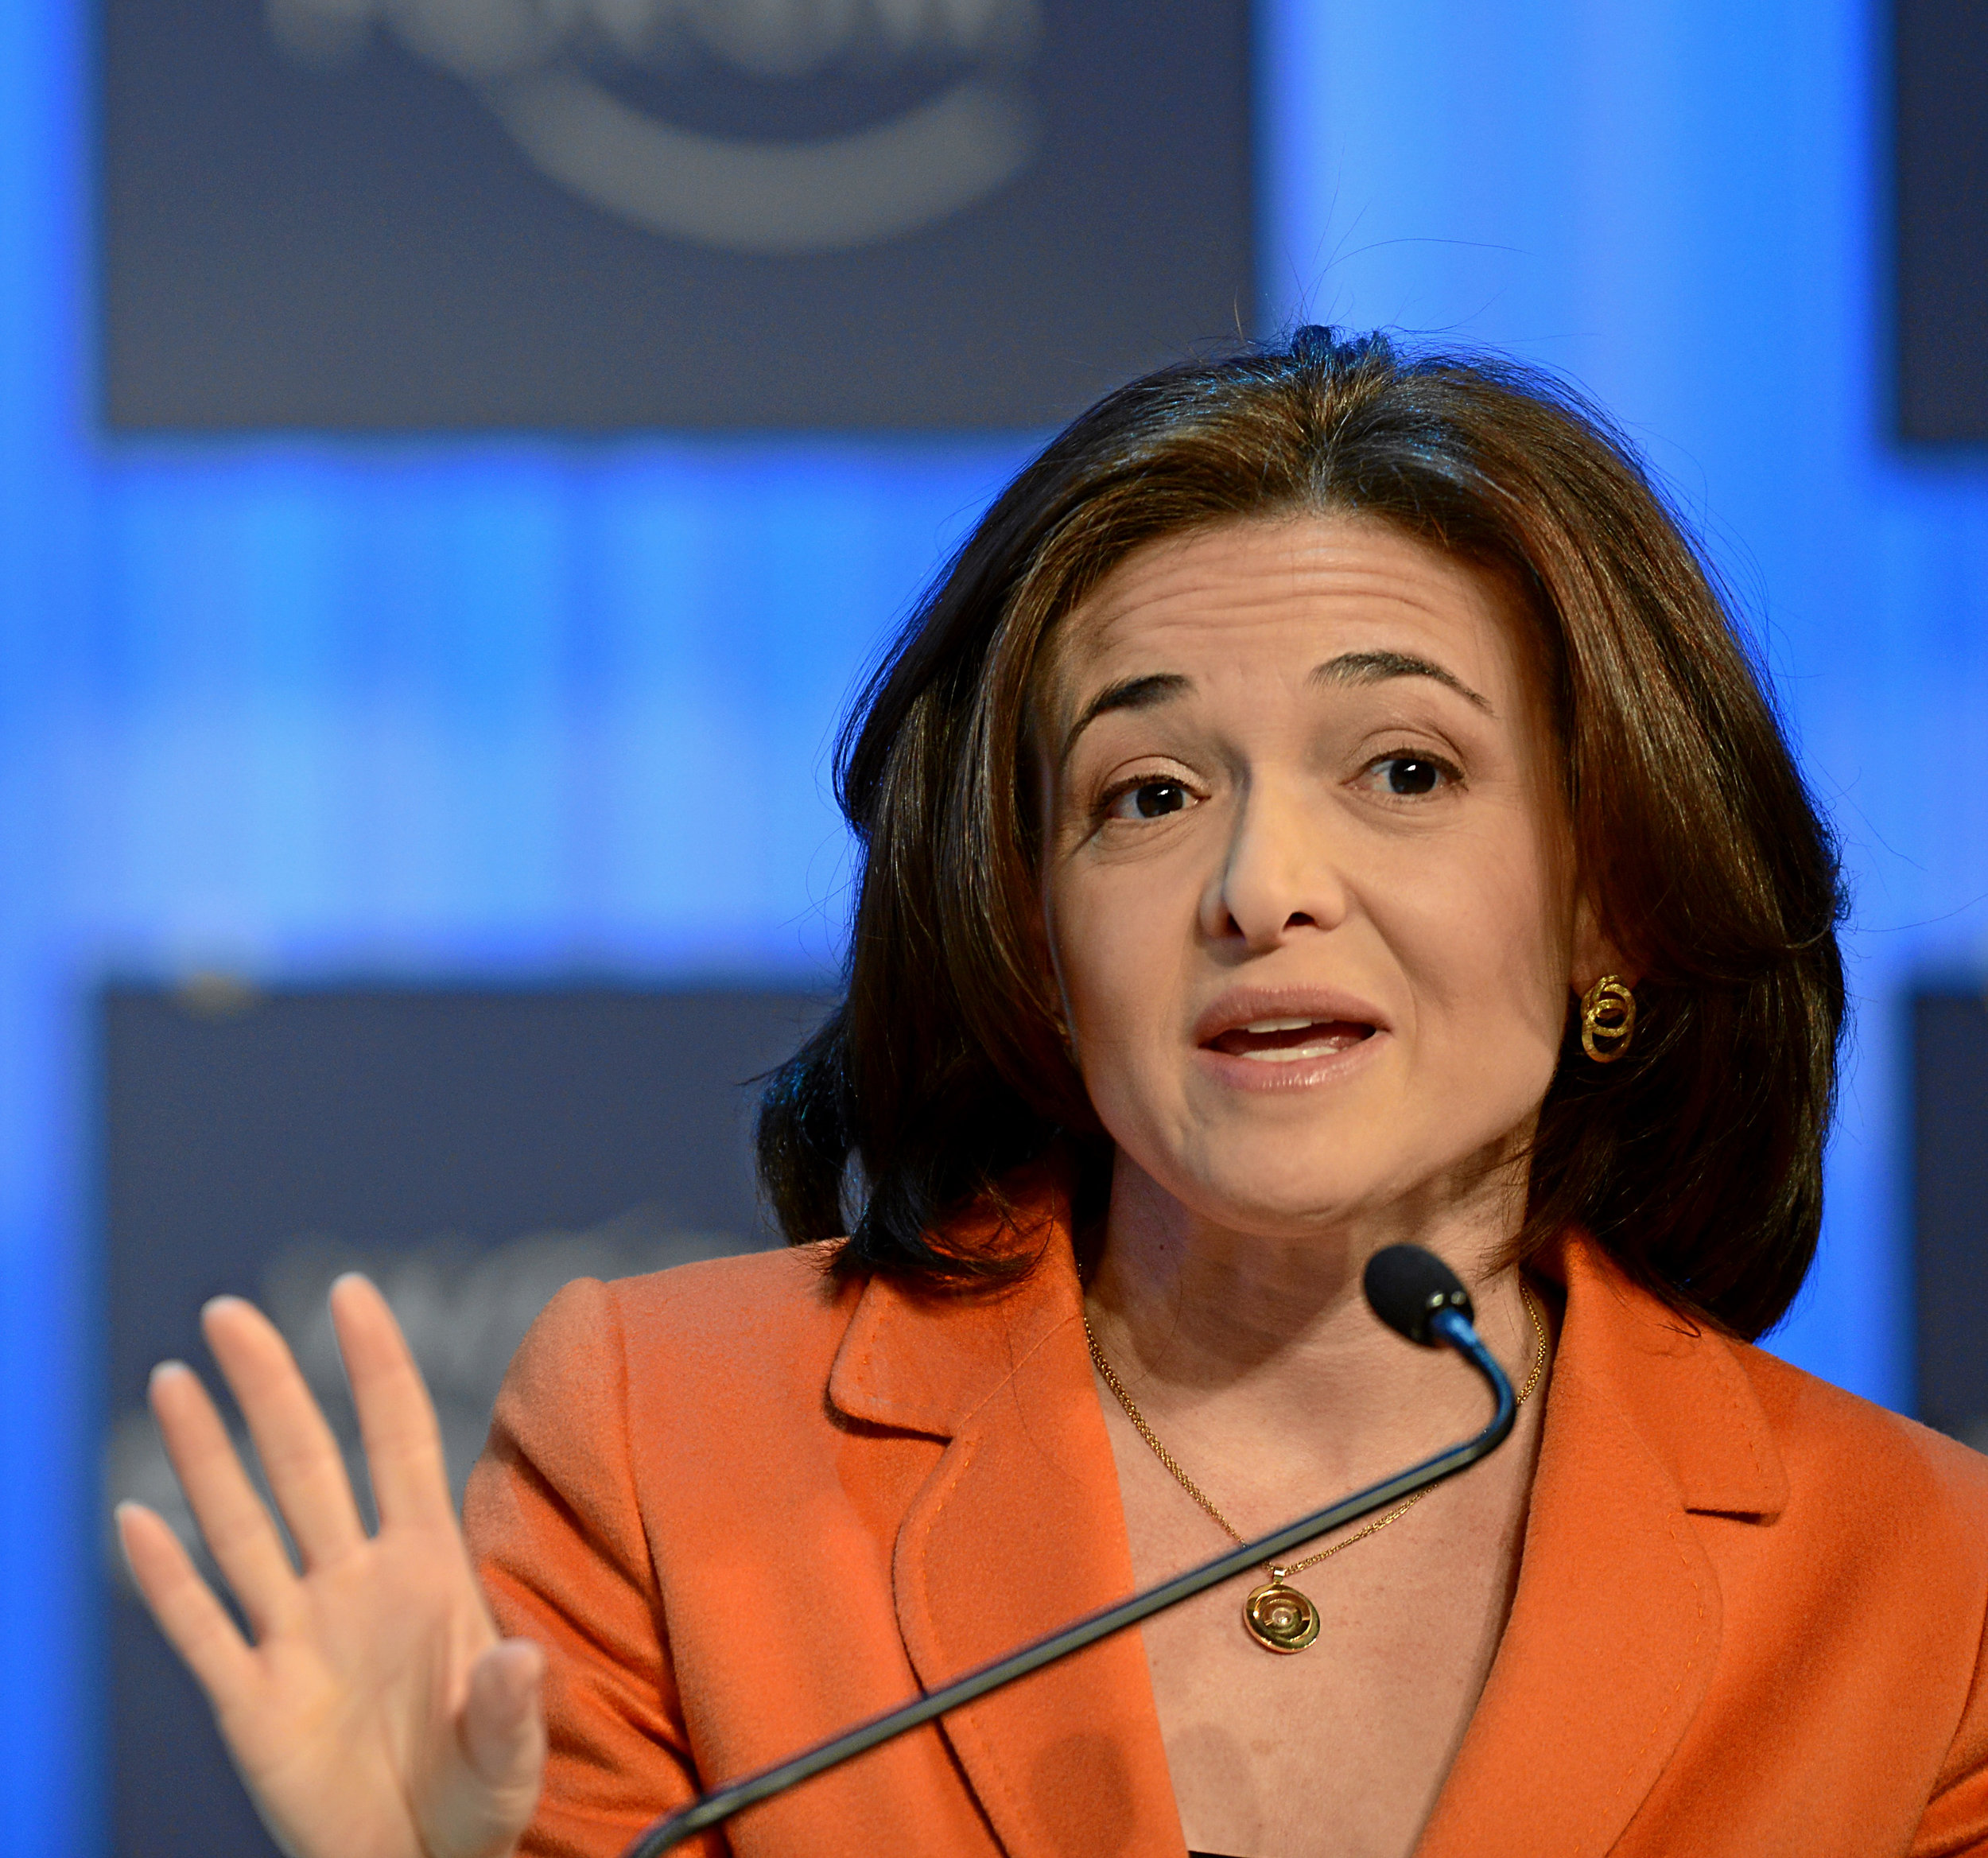 Sheryl_Sandberg_World_Economic_Forum_2013.jpg